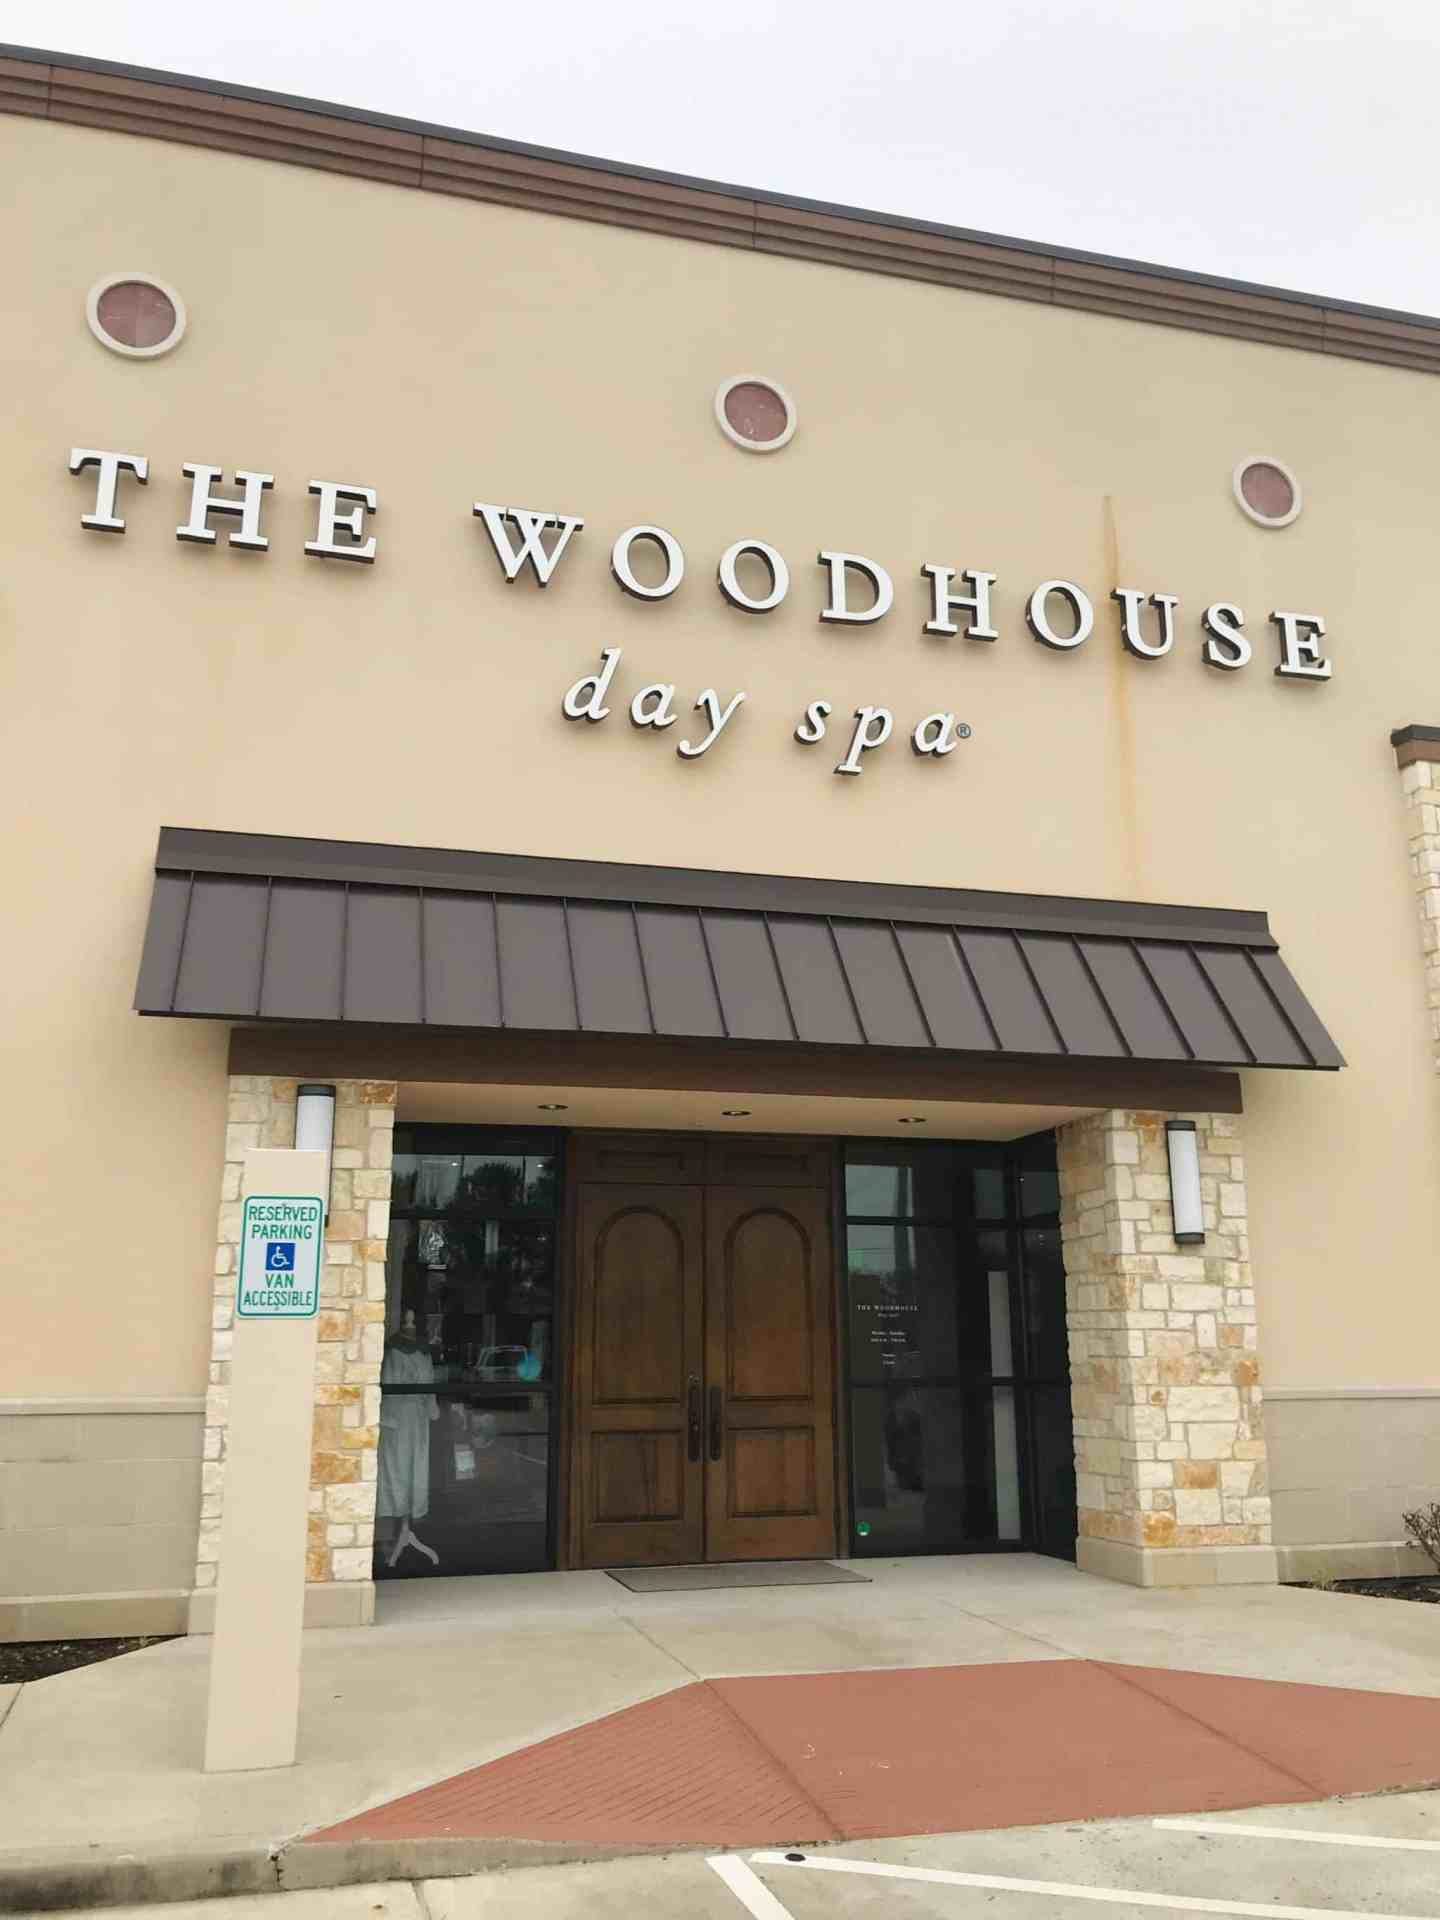 The Woodhouse Day Spa Vintage